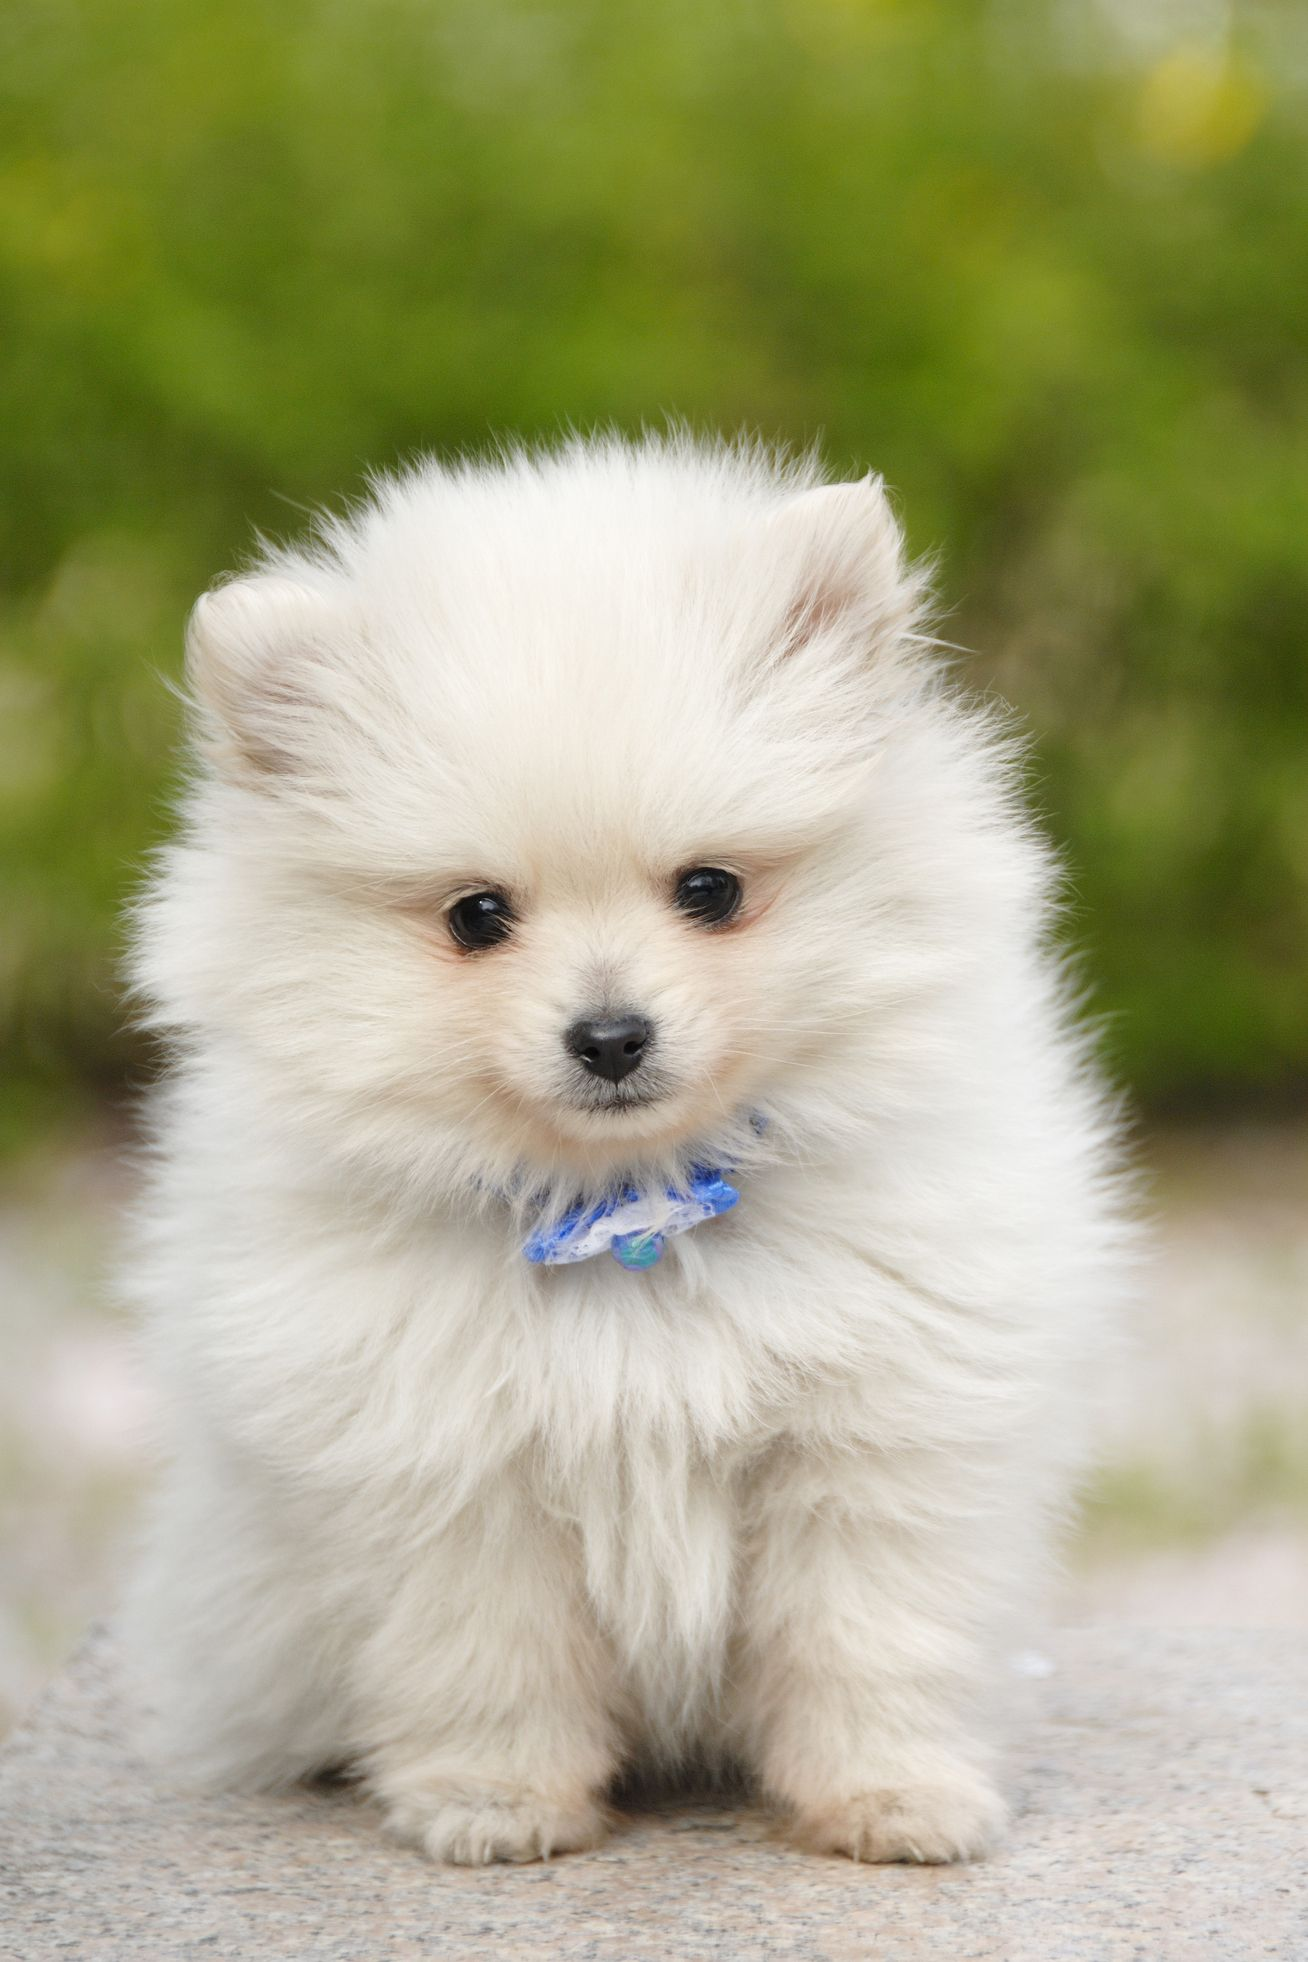 14 Small White Dog Breeds To Add To Your Family Asap Pups I M